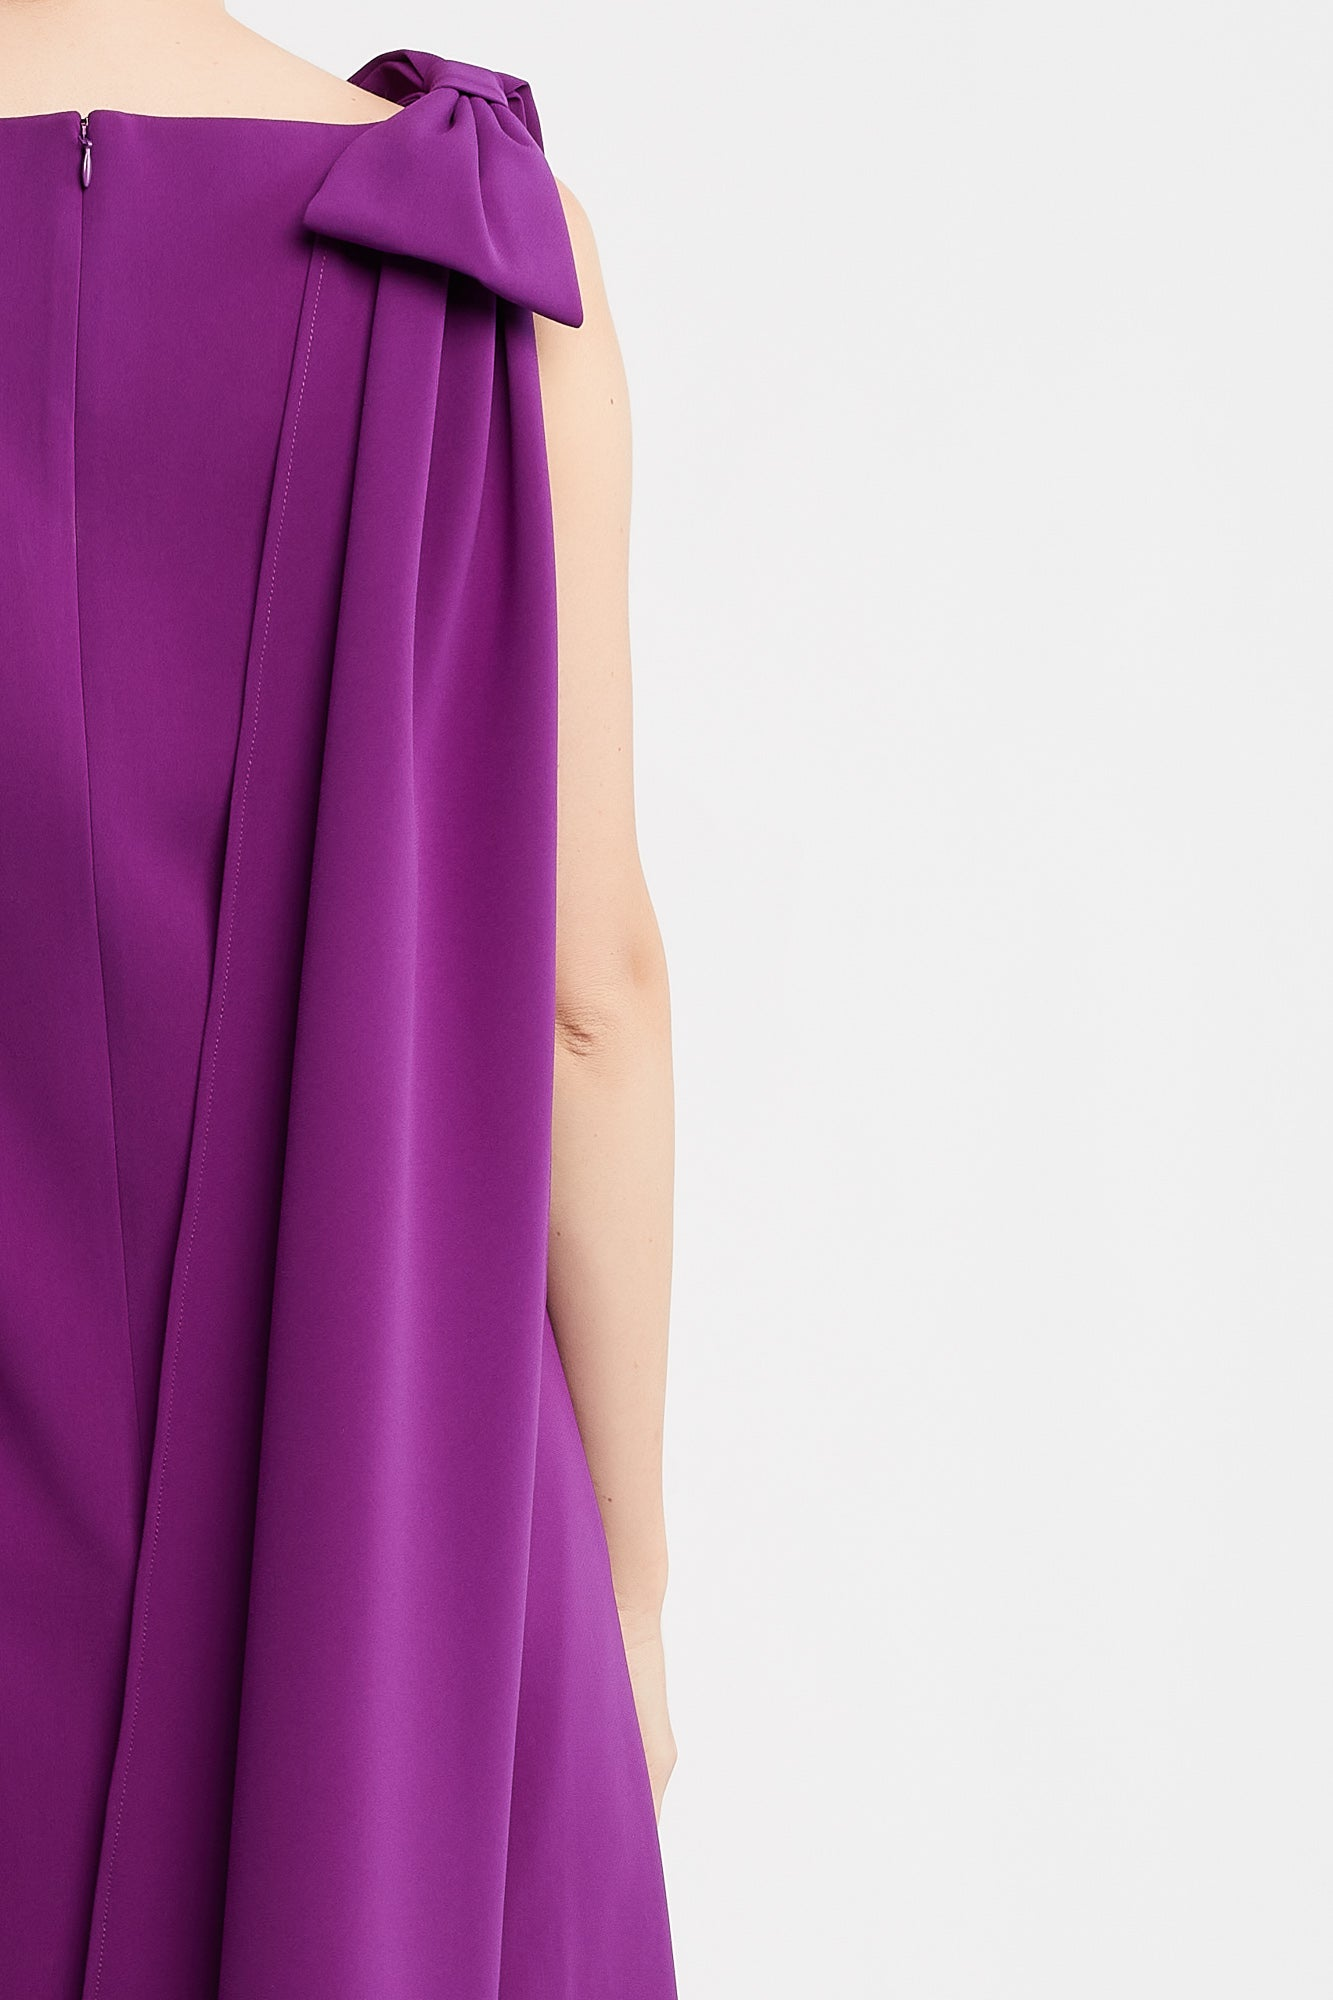 Marina-Rose Sleeveless Cocktail Dress in Berry with Bows